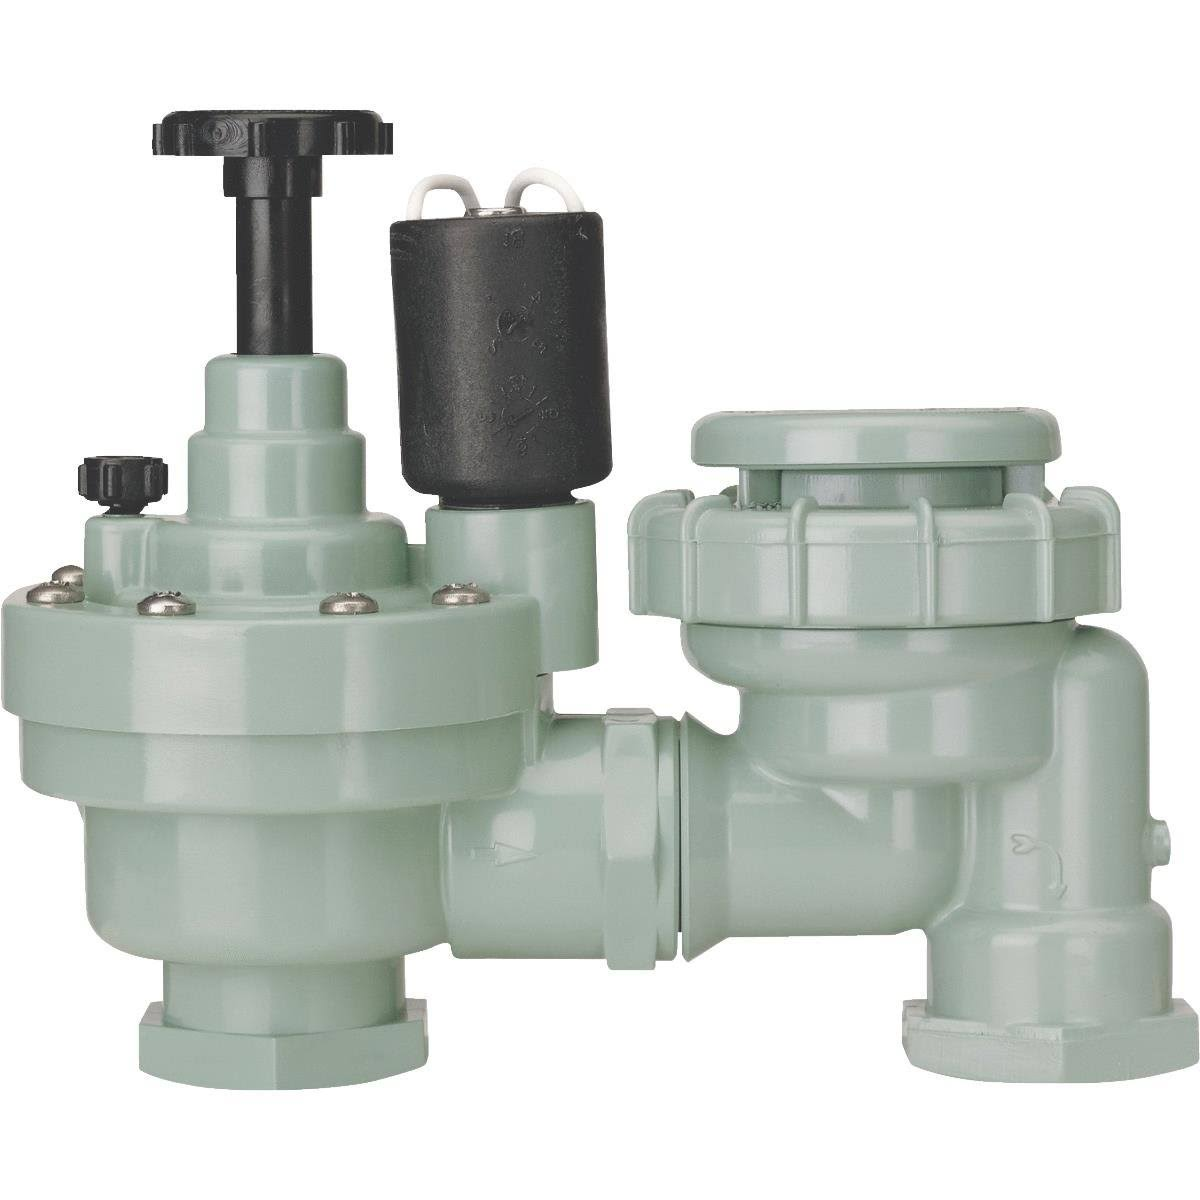 RJ Anti-Siphon Valve with Flow Control